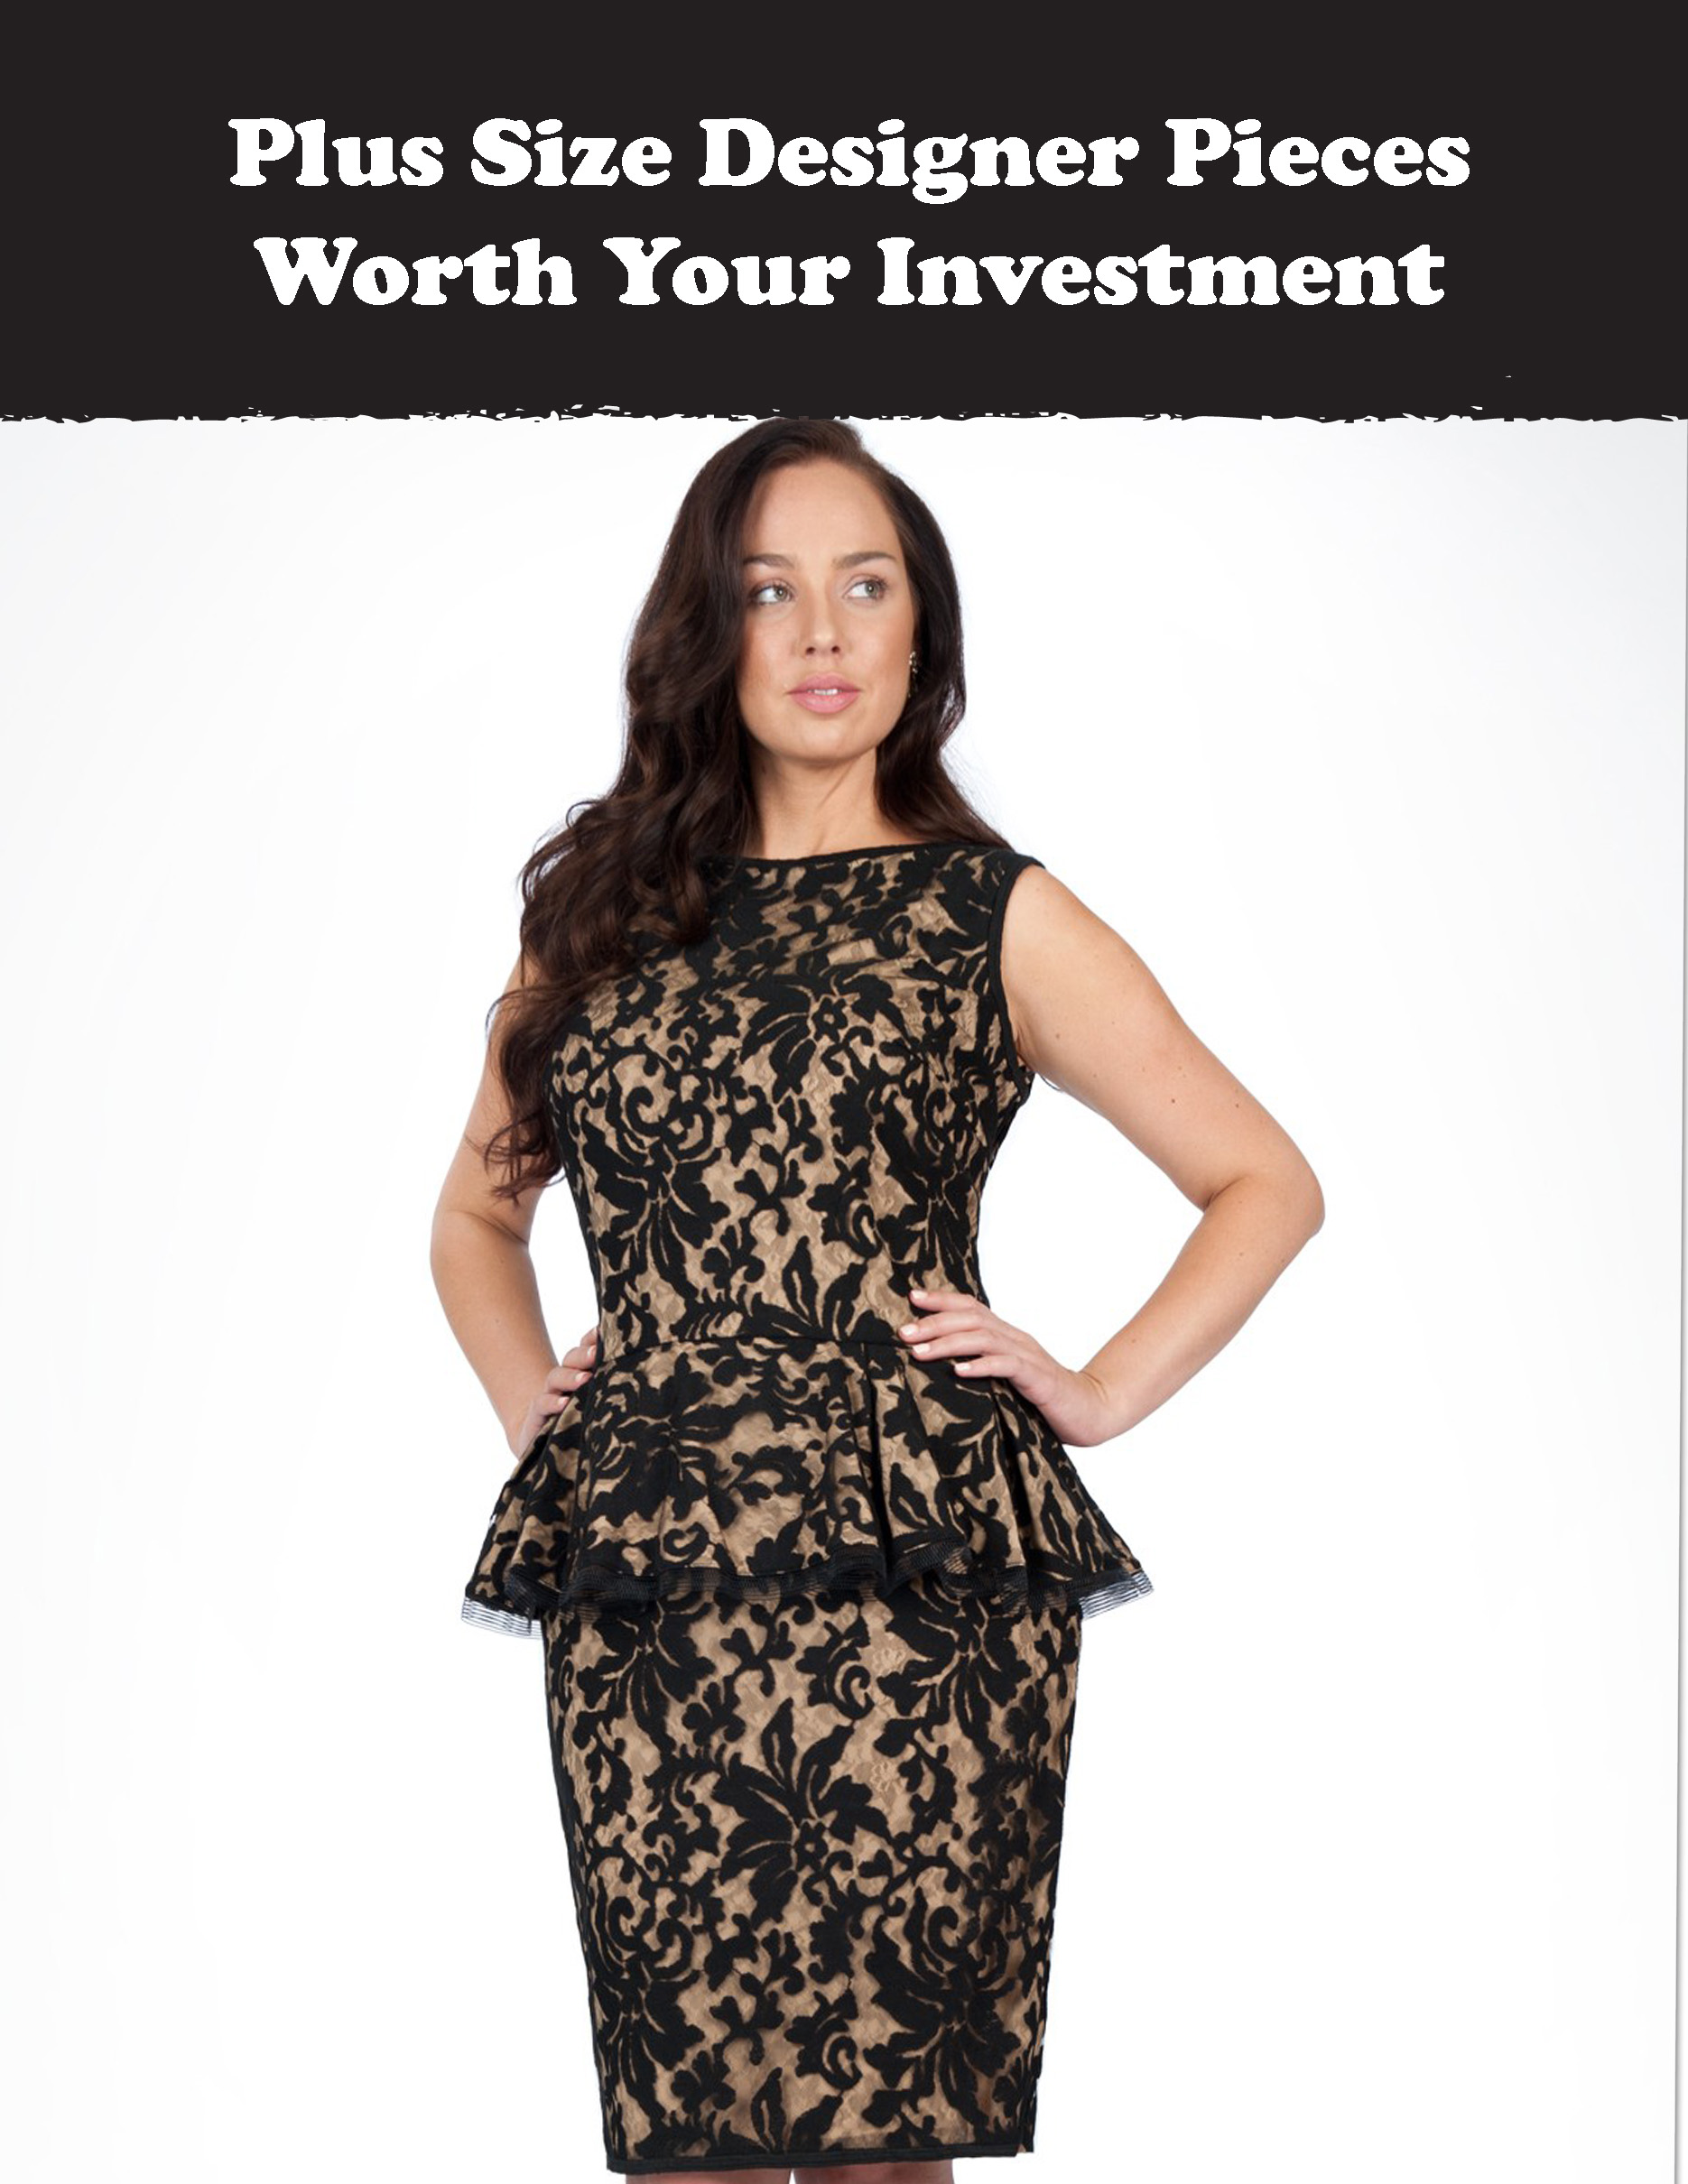 8 PLUS SIZE DESIGNER PIECES WORTH YOUR INVESTMENT   Stylish Curves